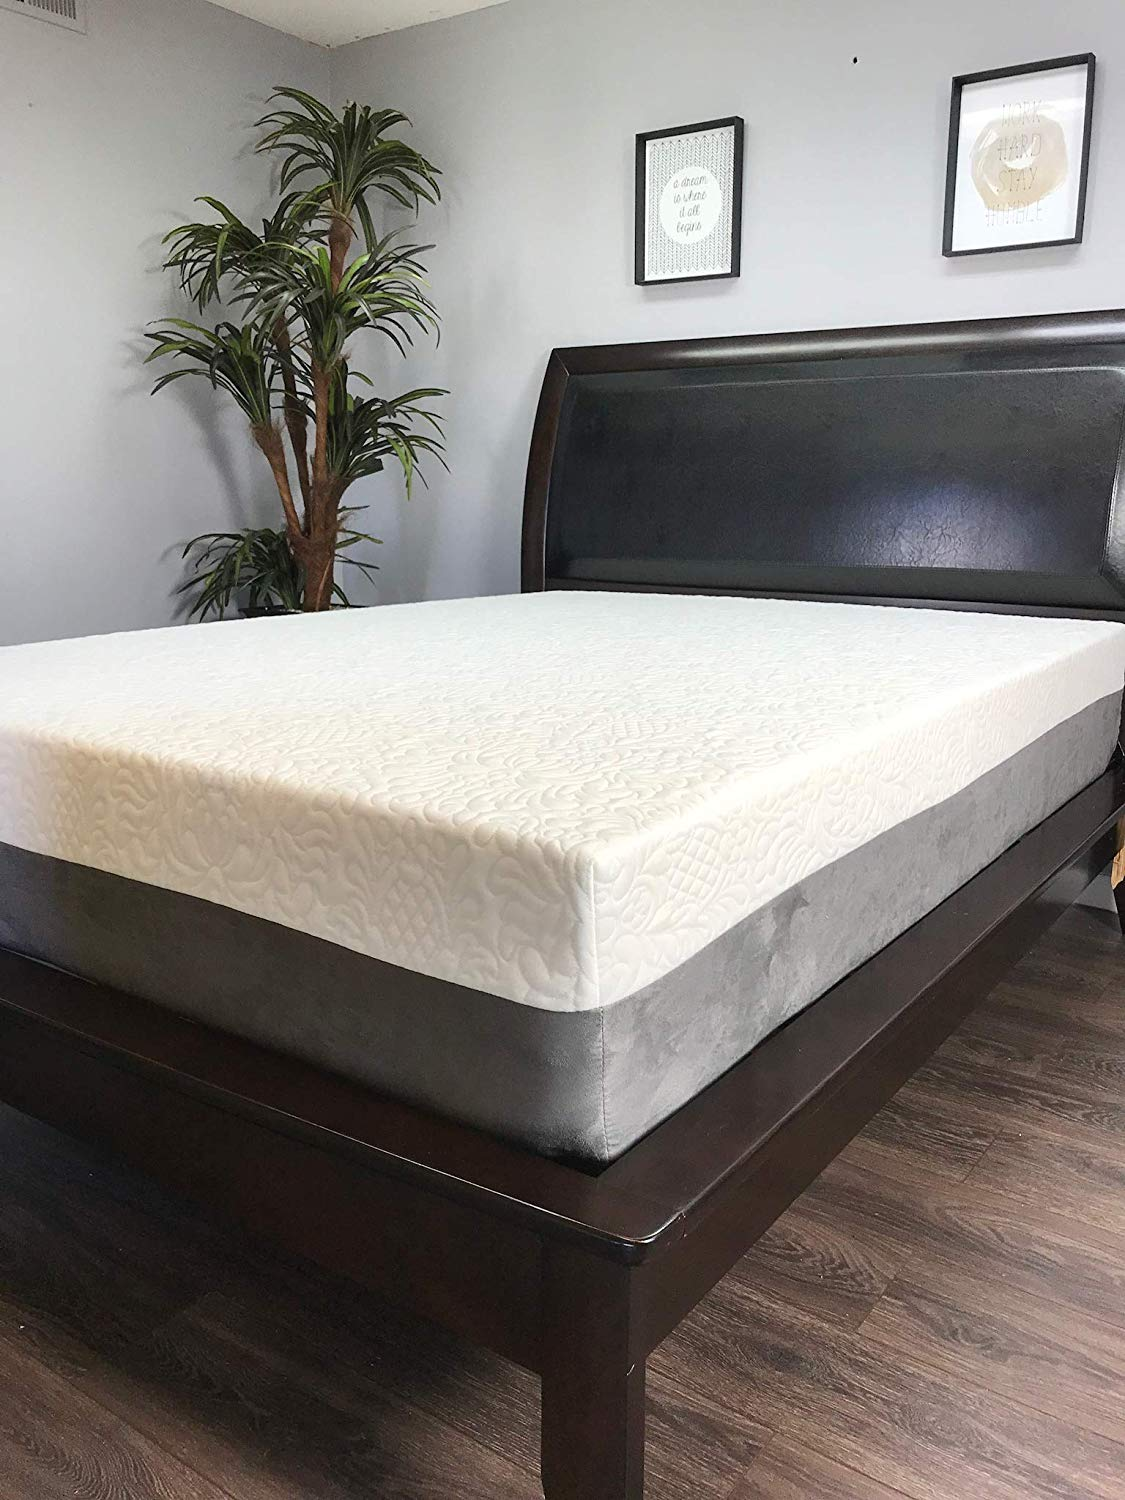 American Mattress Company - 12in Gel Infused Memory Foam Mattress - 100% Made in USA - 20 Year Warranty - CertiPur Foam - Chiropractic Endorsed (Twin Long)